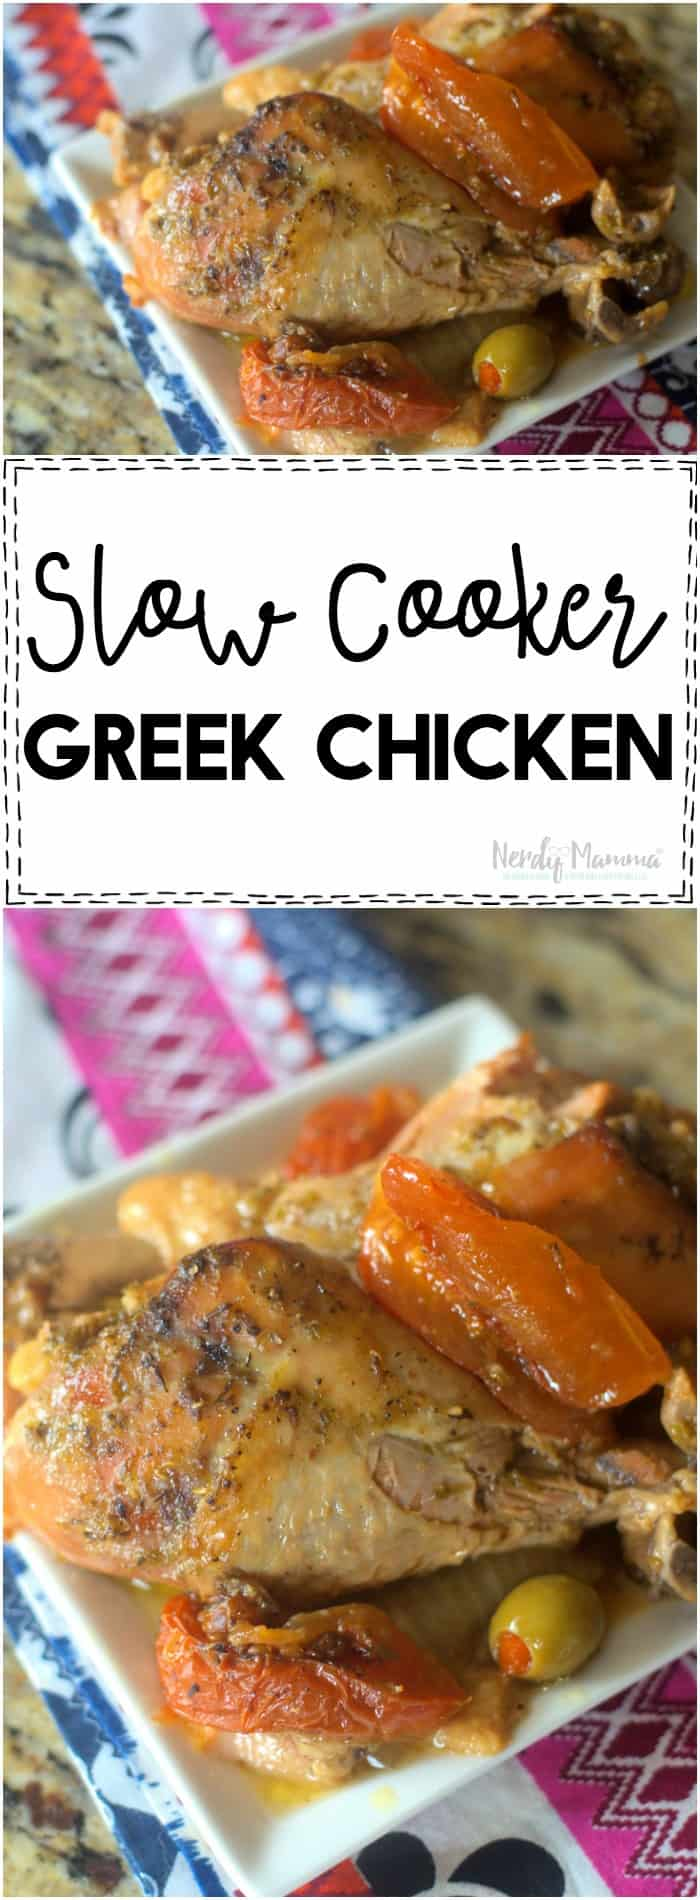 OMG! This slow cooker greek chicken is DELICIOUS and SO EASY!